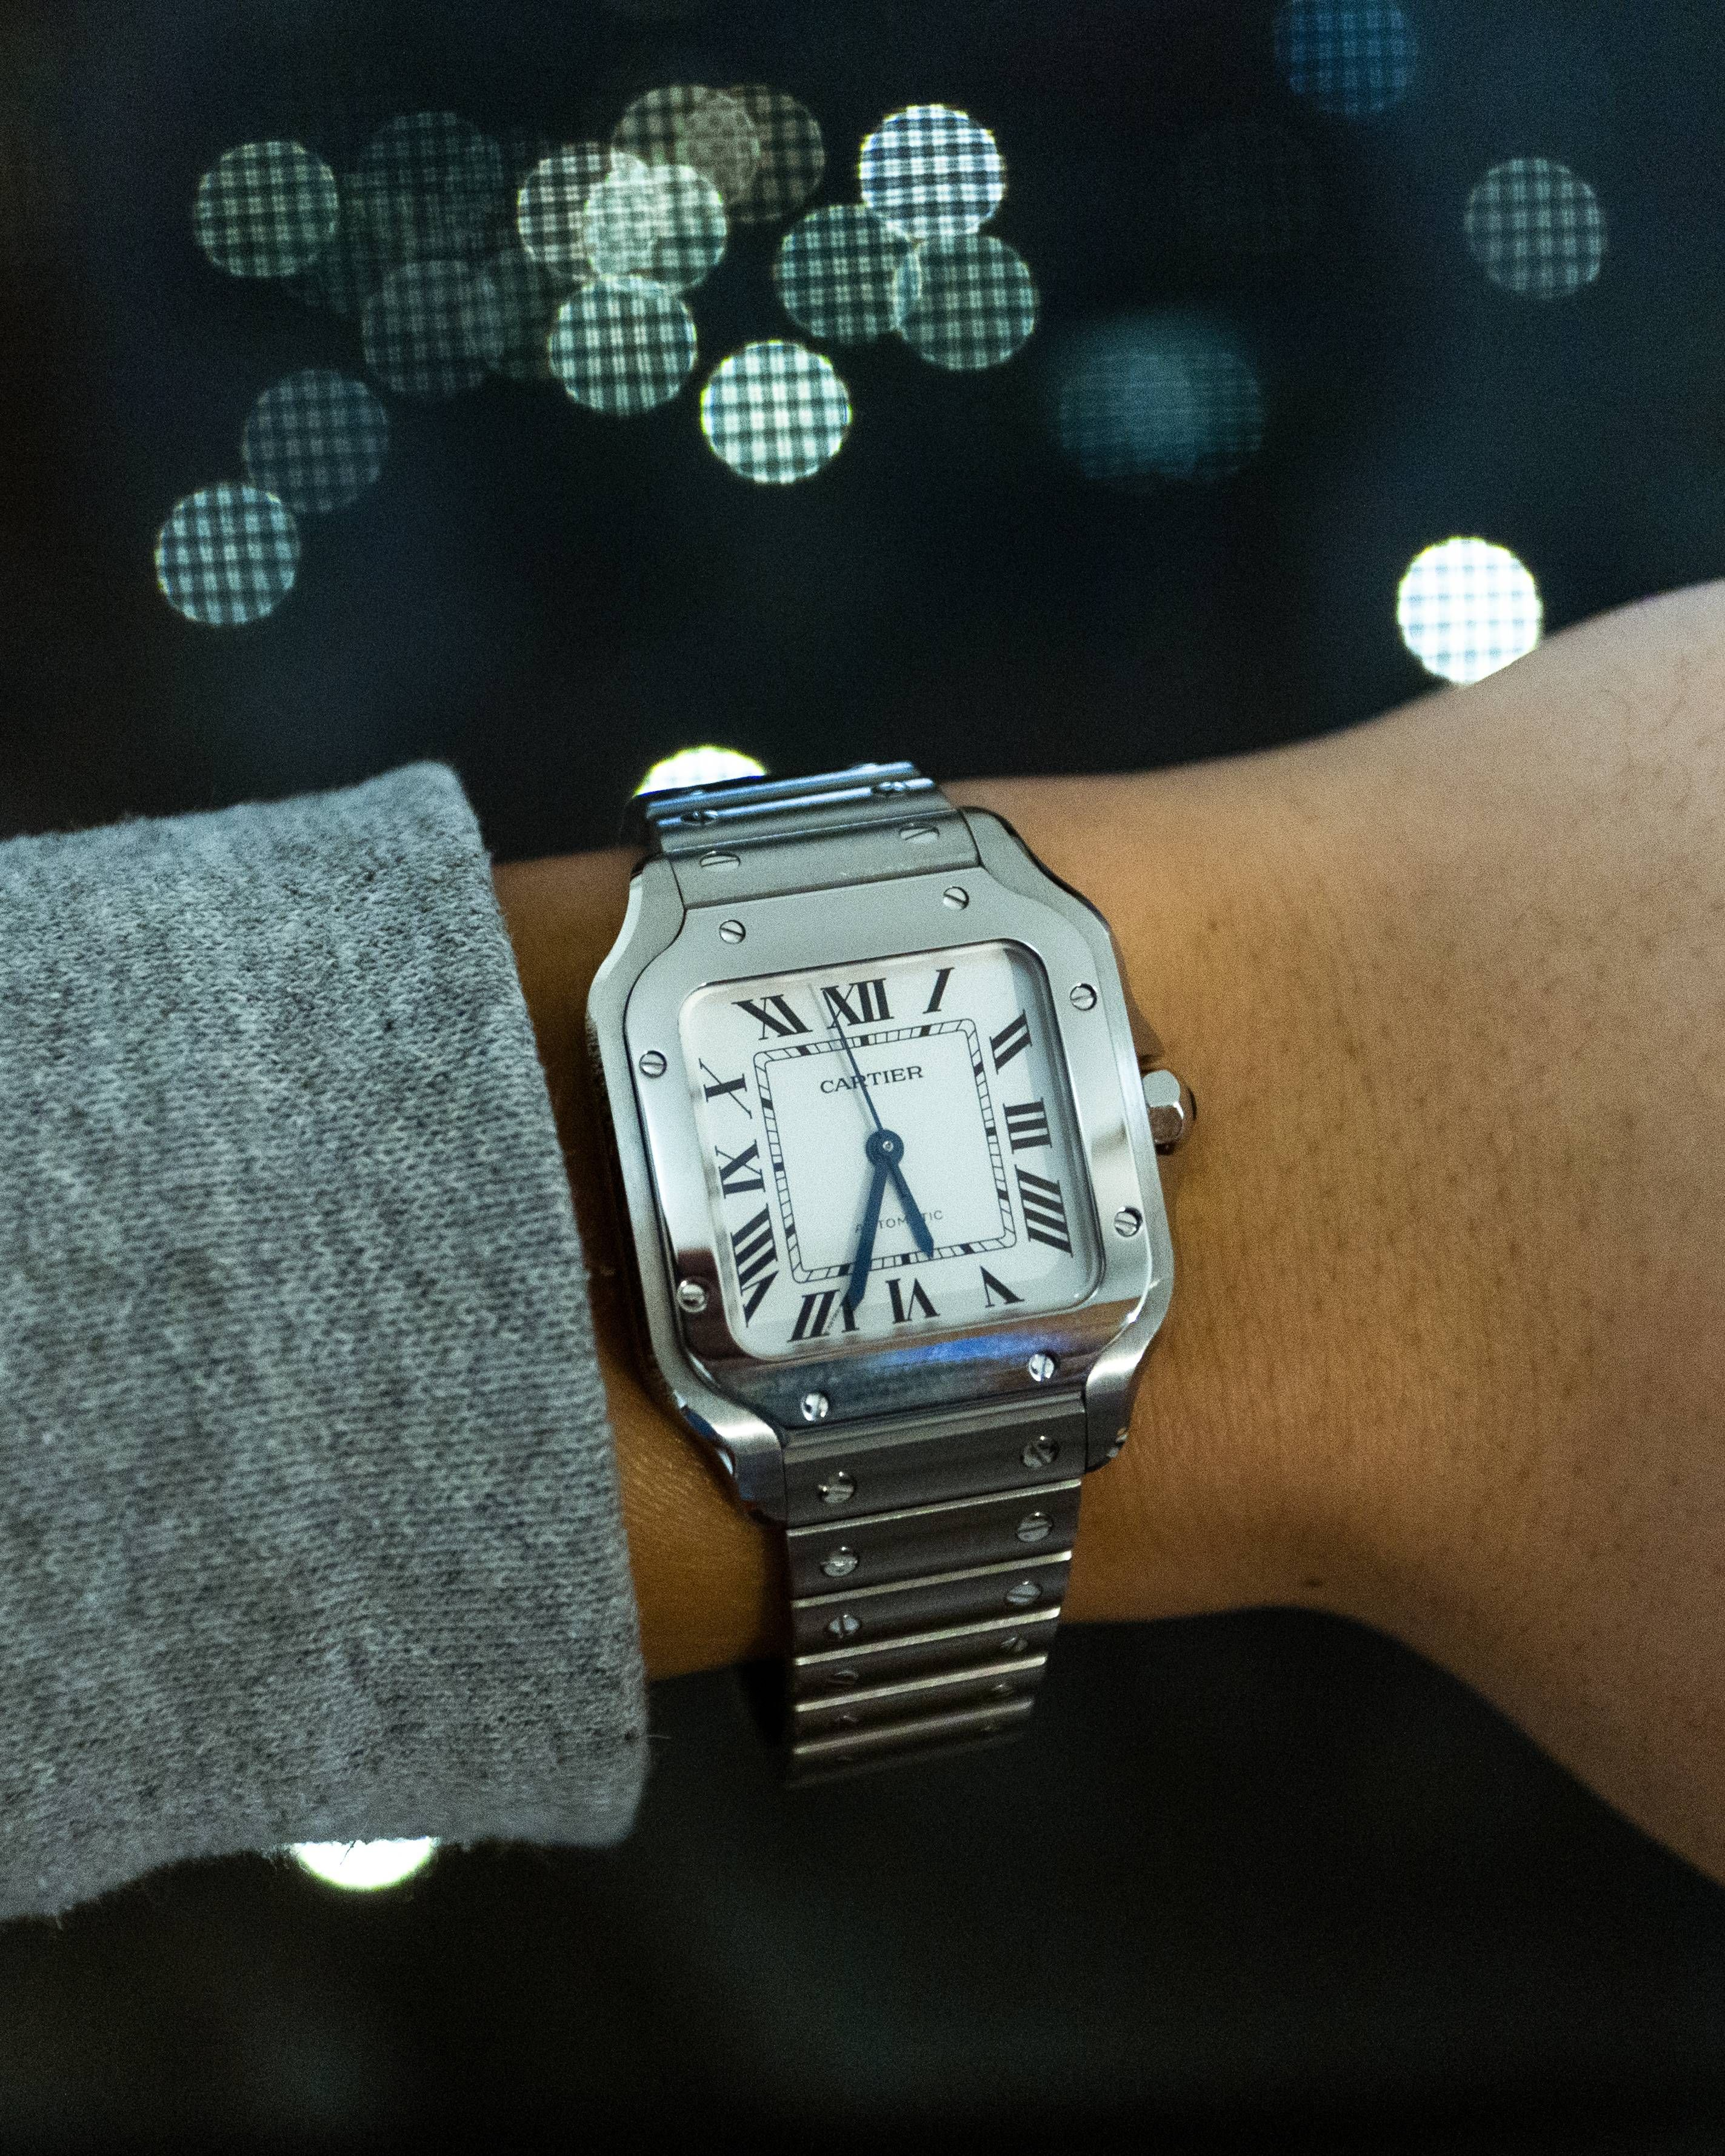 130 Watch ideas in 2021 watches for men luxury watches cool 2846x3557